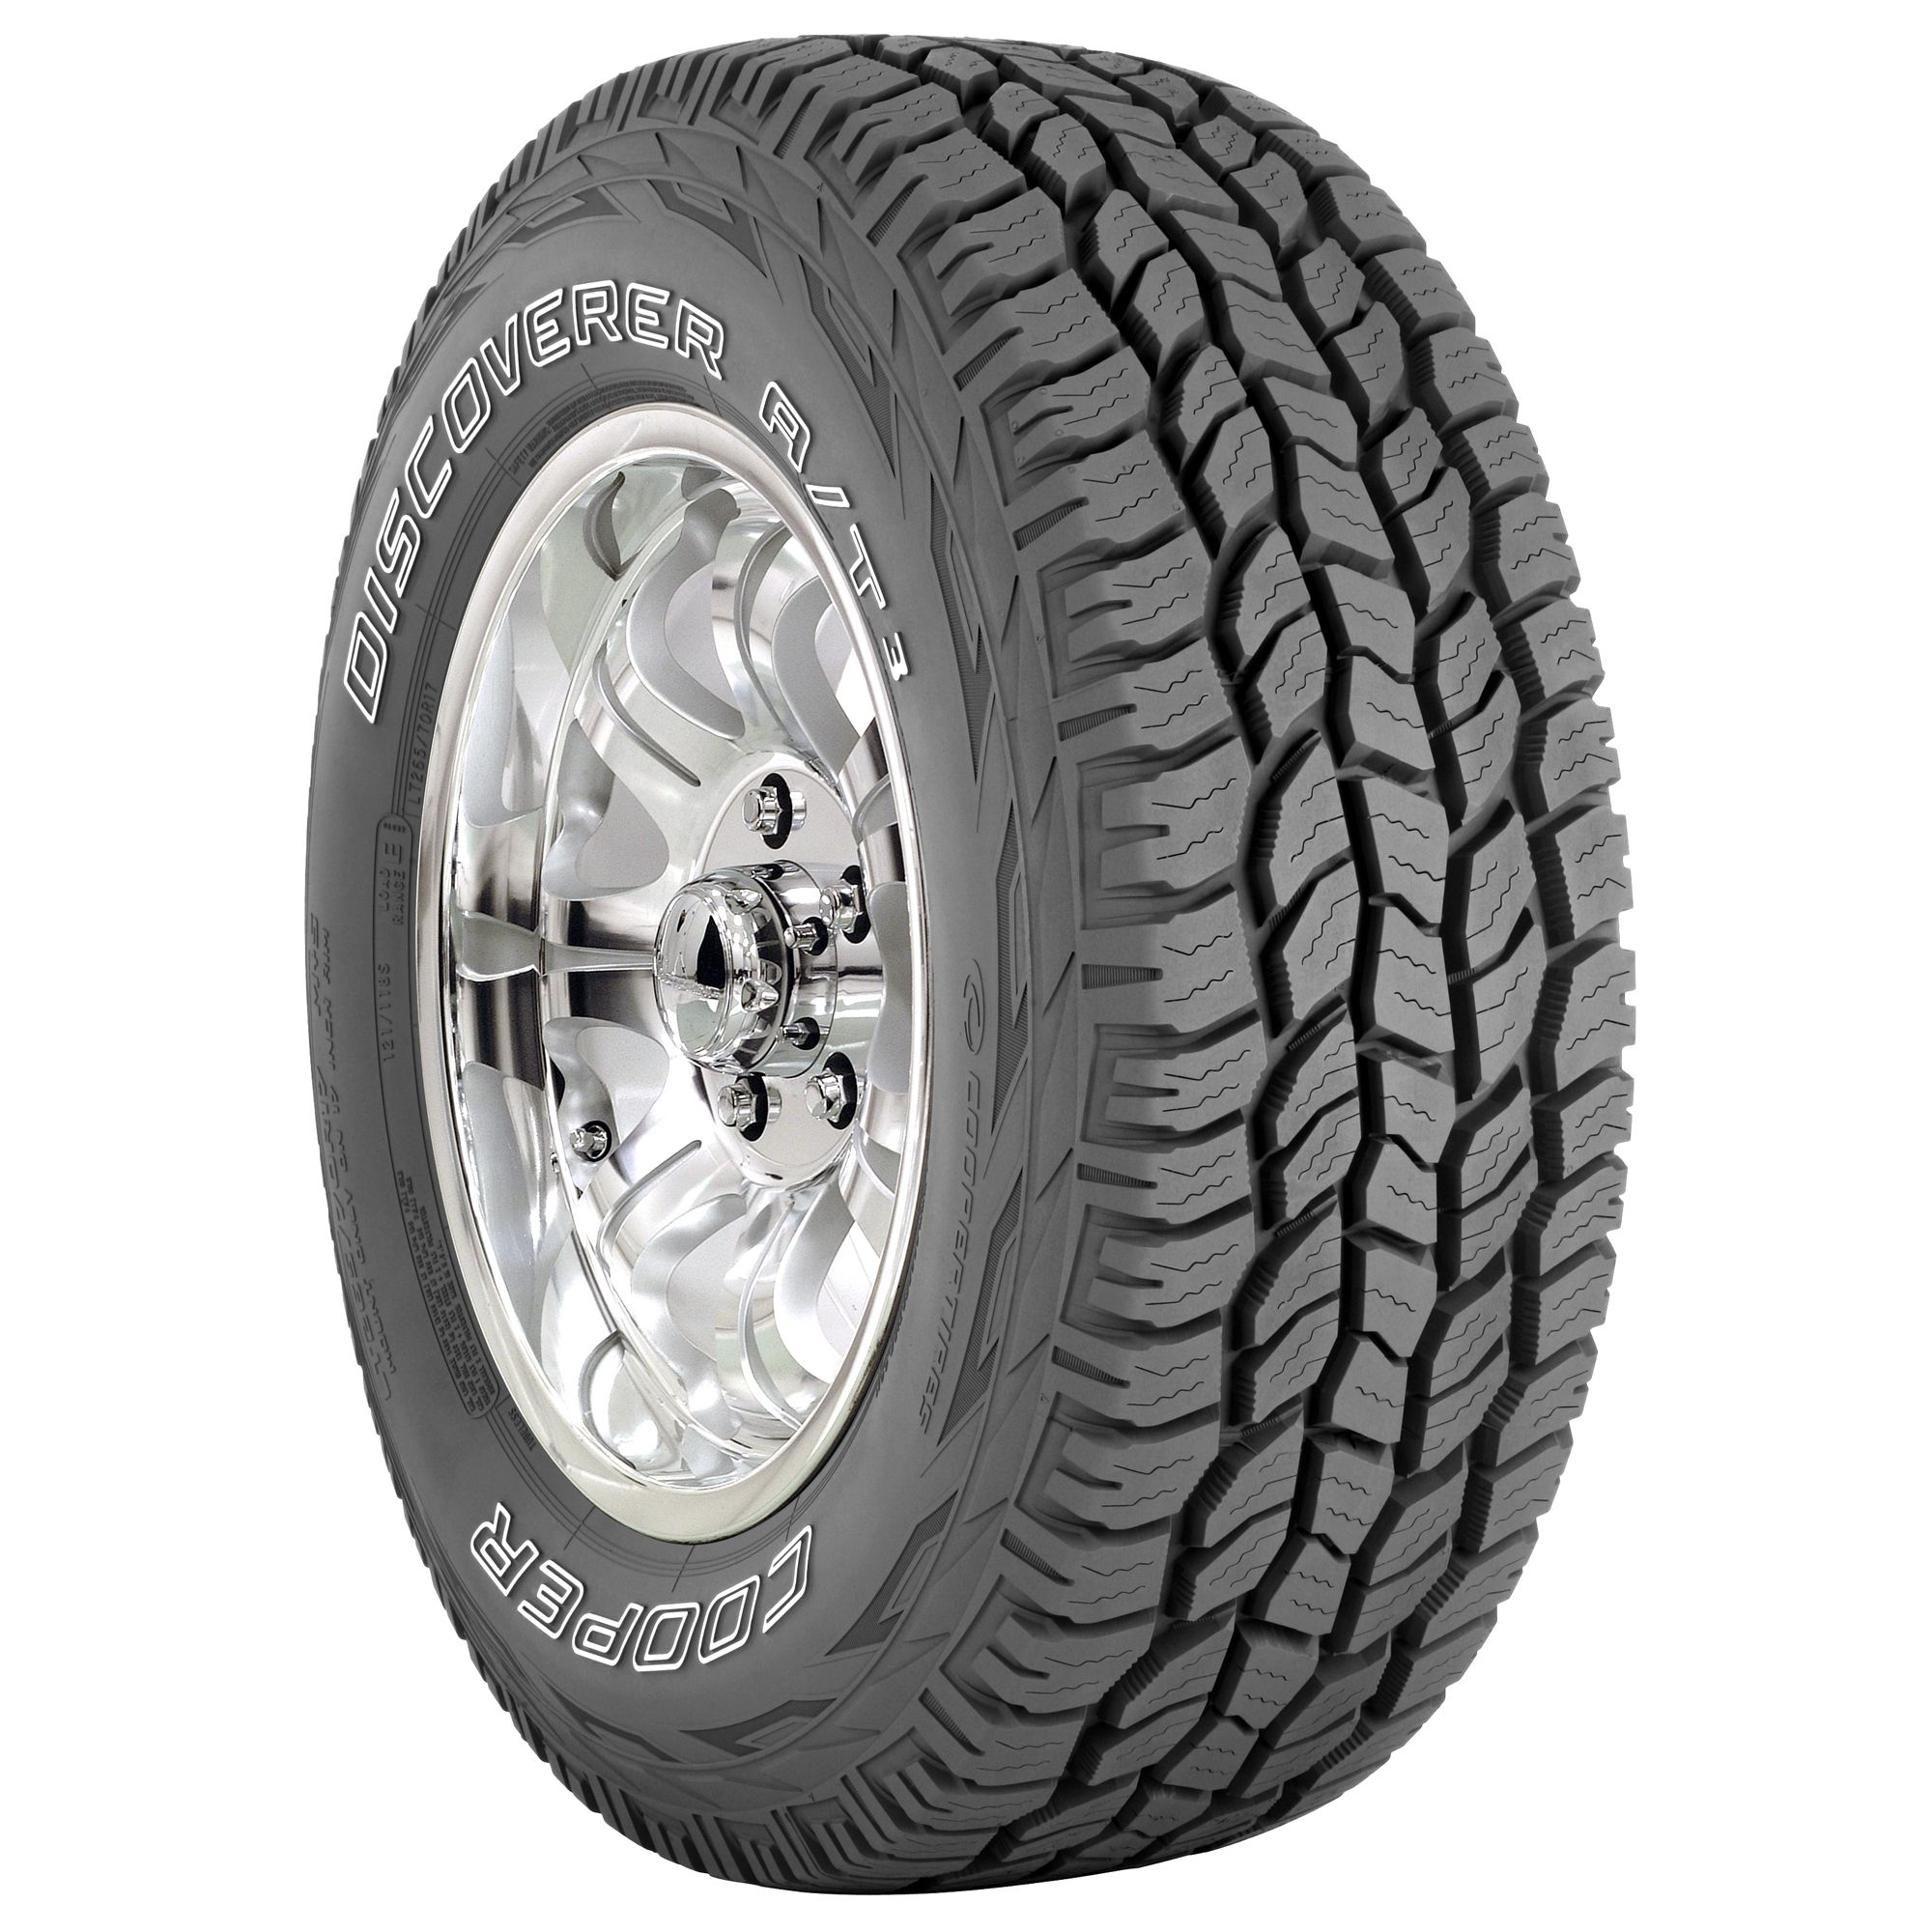 Discoverer A/T3 - 265/65R18 114T OWL - All Season Tire